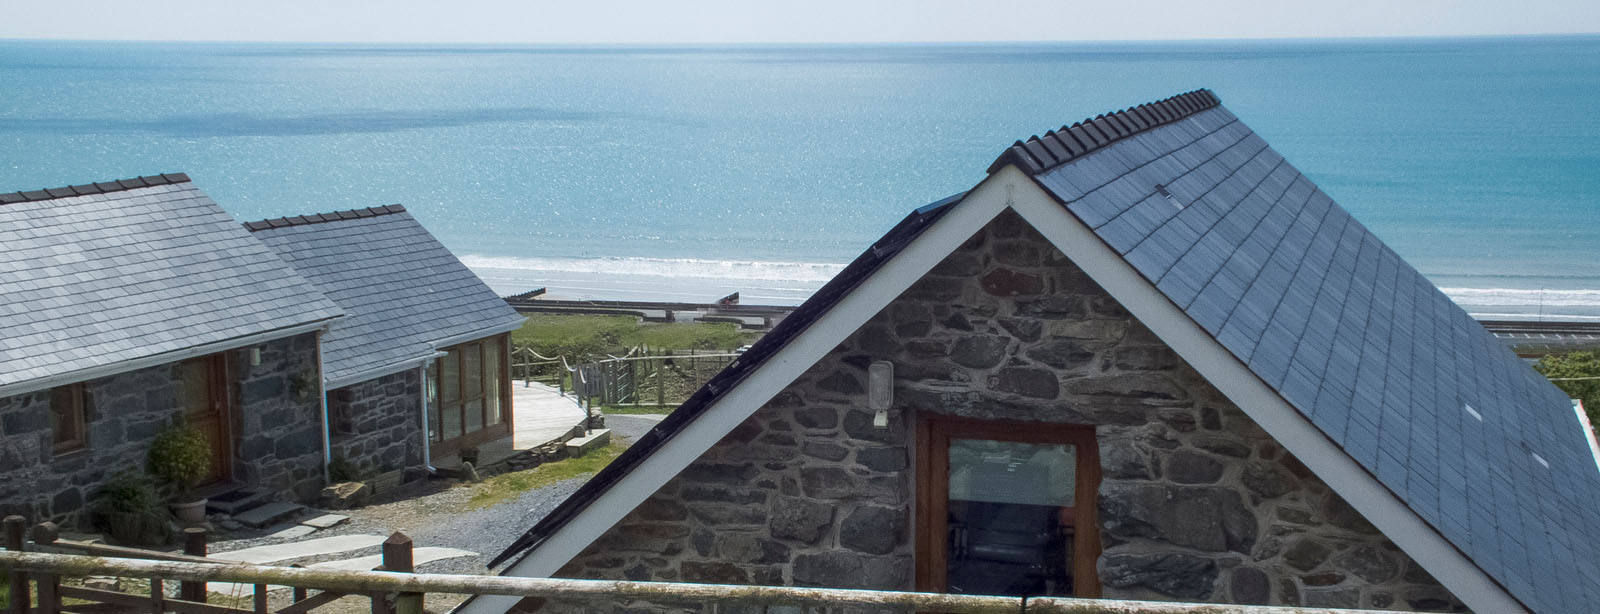 North Wales Coastal Holiday Cottages Another1st Org